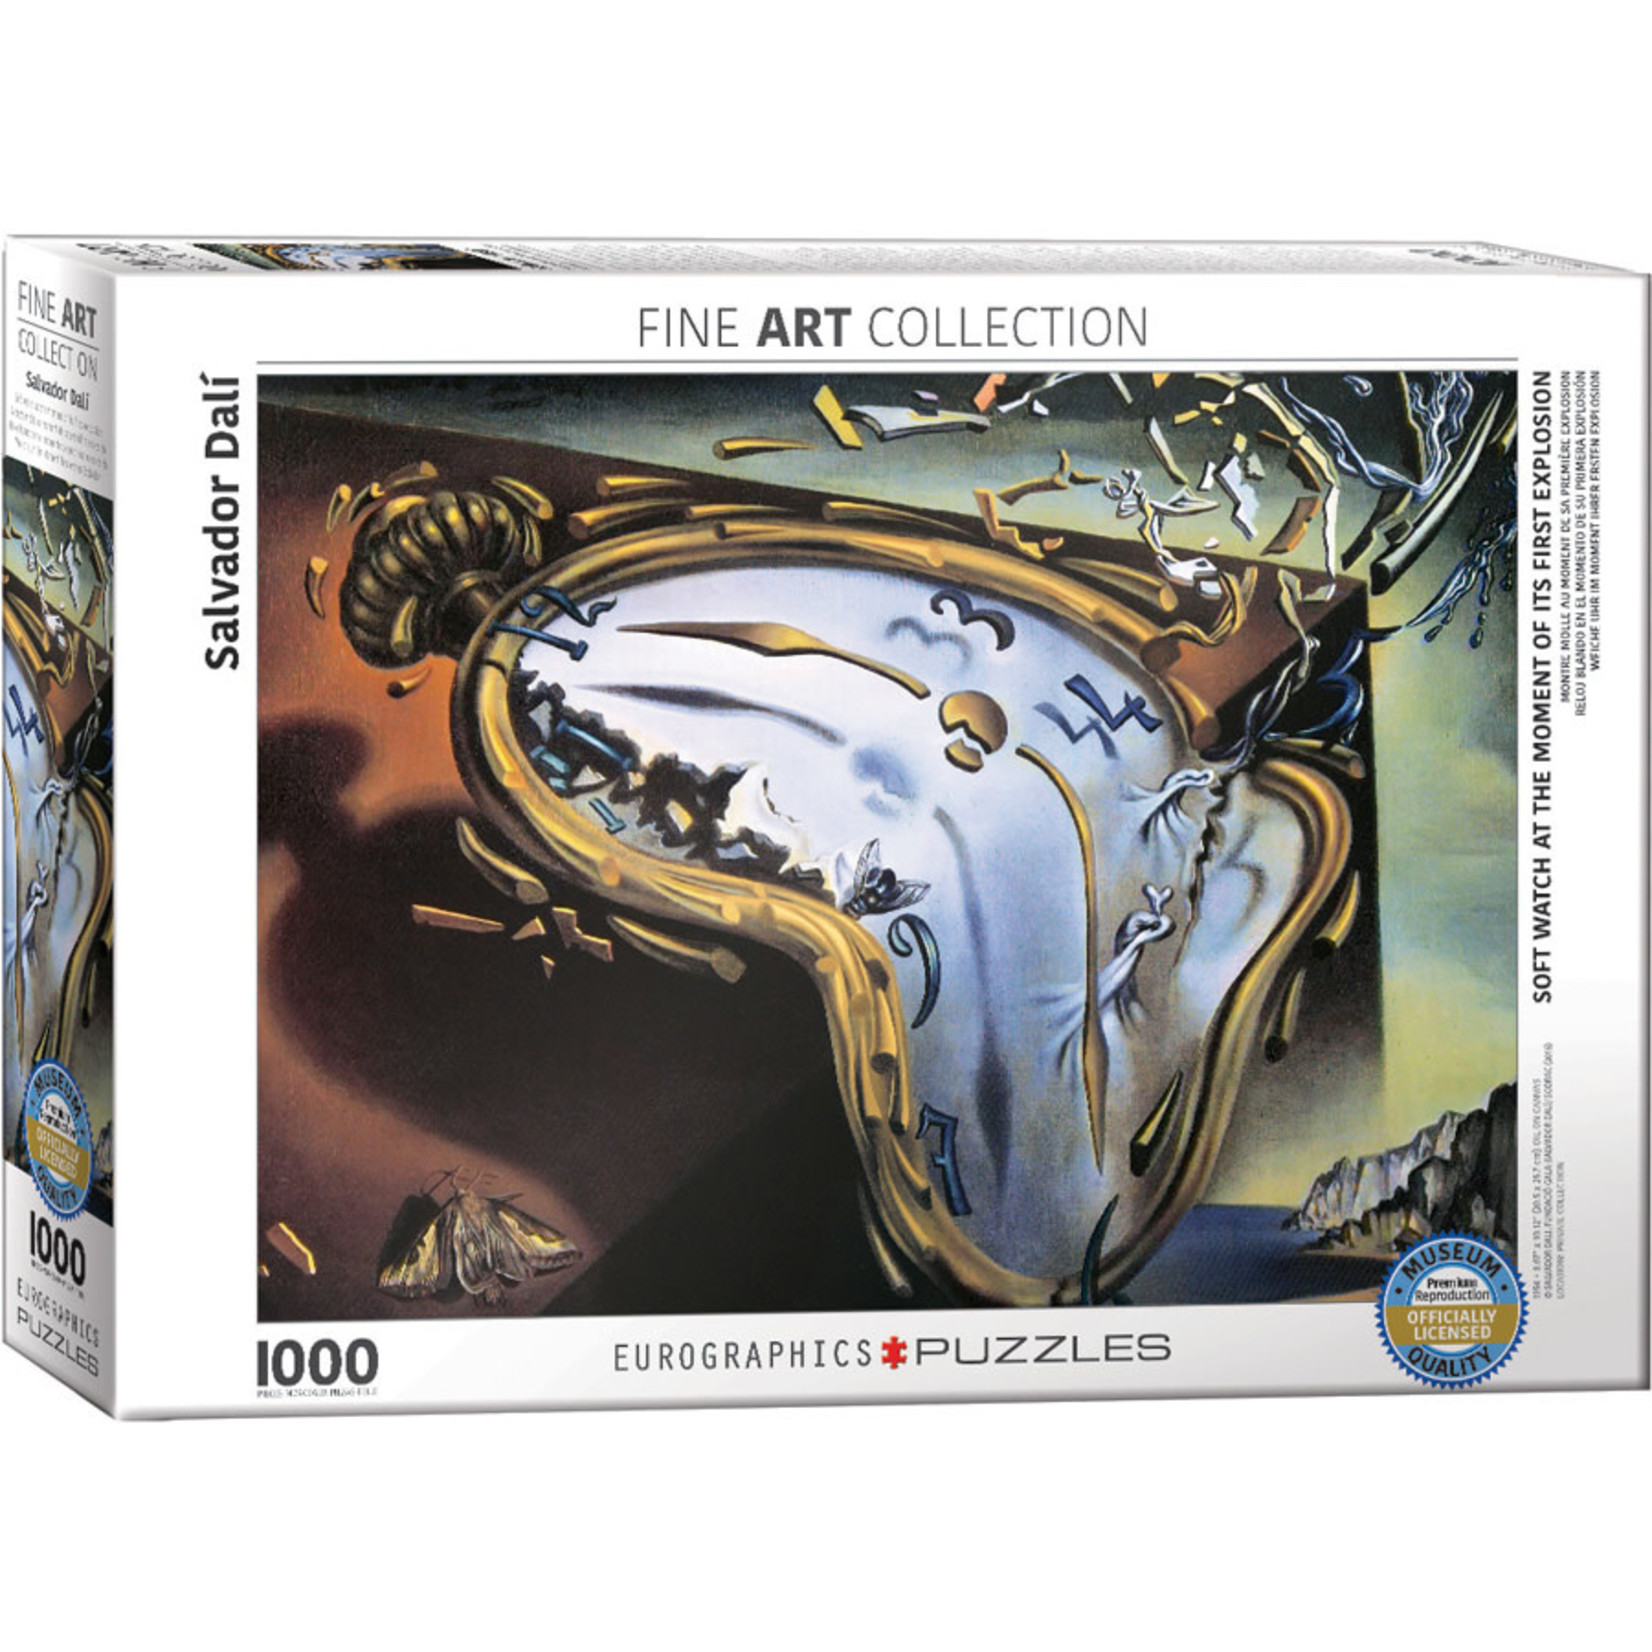 Eurographics Eurographics Puzzle: Soft Watch At Moment of First Explosion - 1000pc